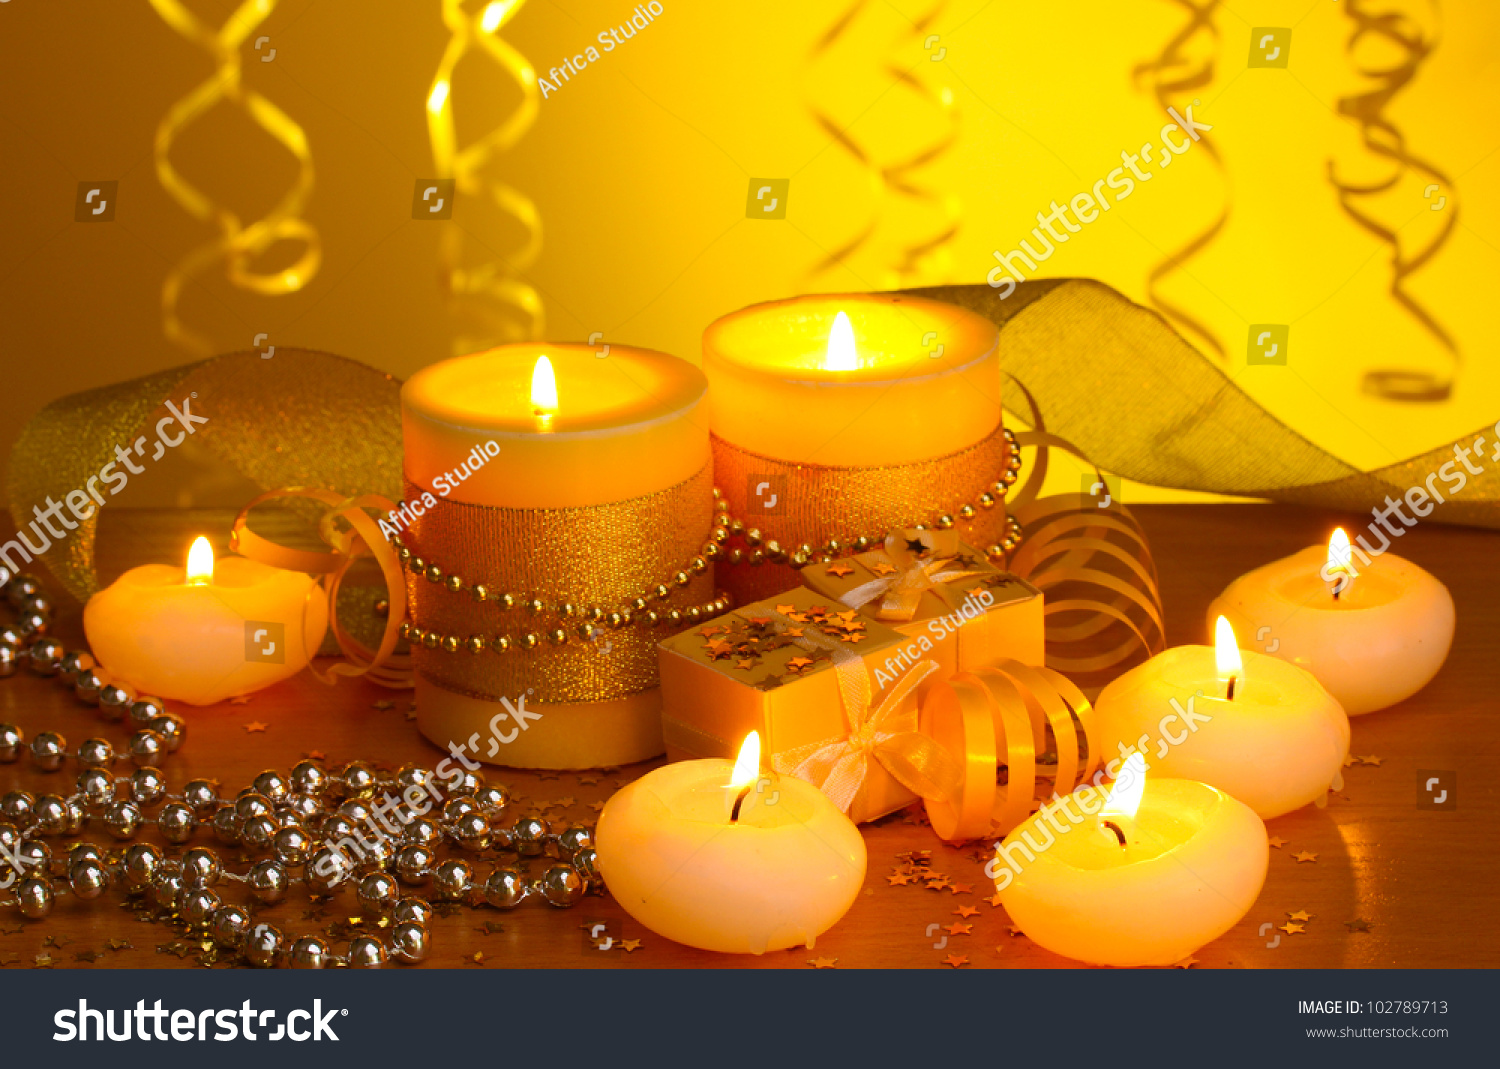 Beautiful Candles, Gifts And Decor On Wooden Table On